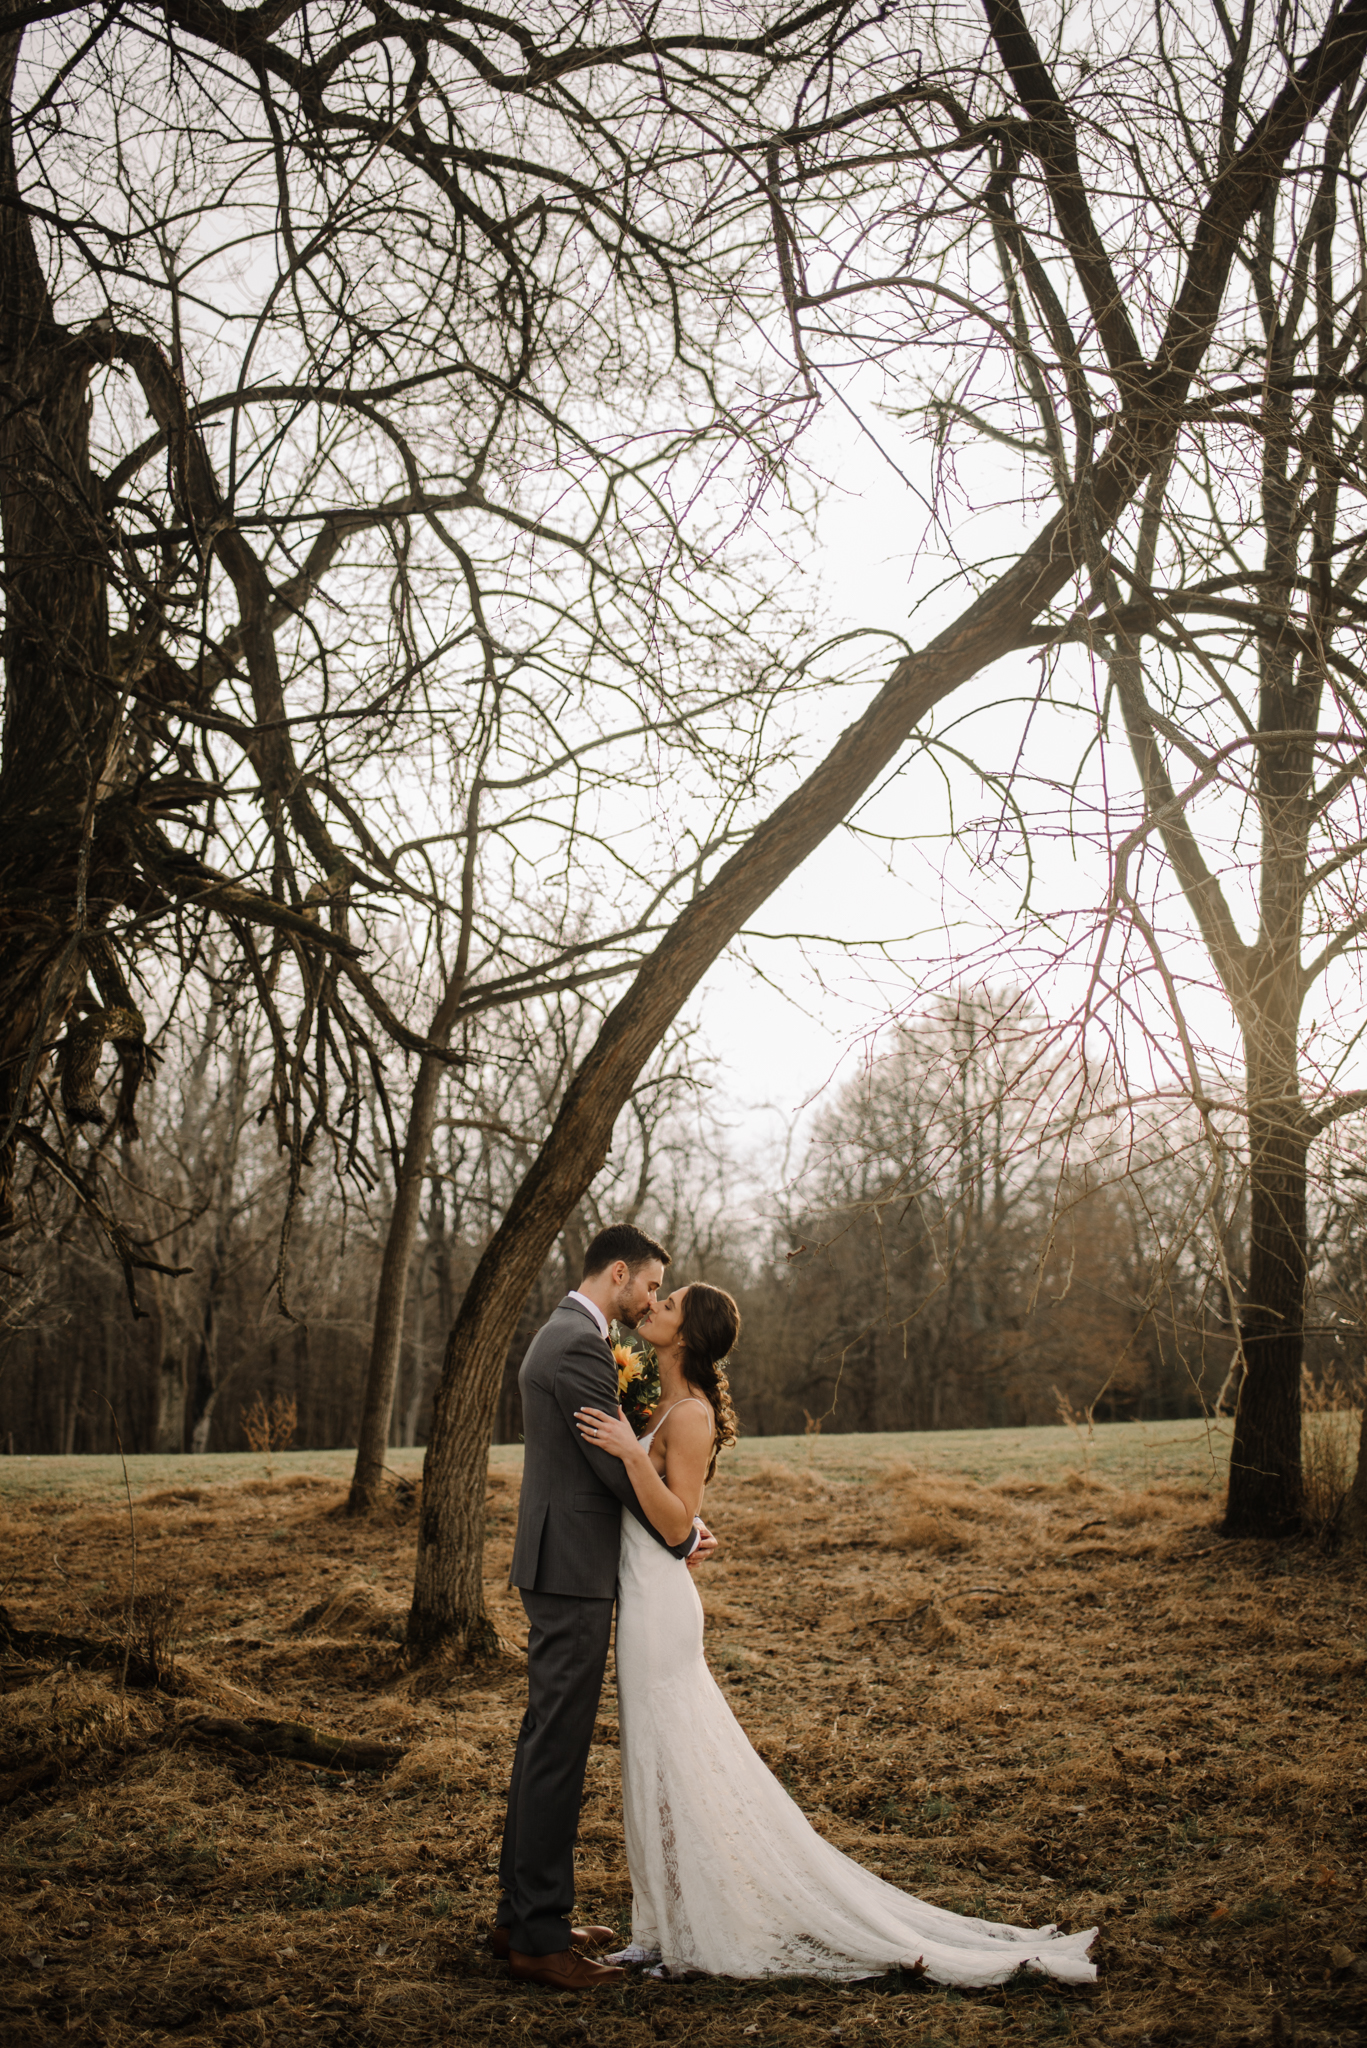 Shenandoah National Park Elopement Wedding Photographer and Planner_30.jpg